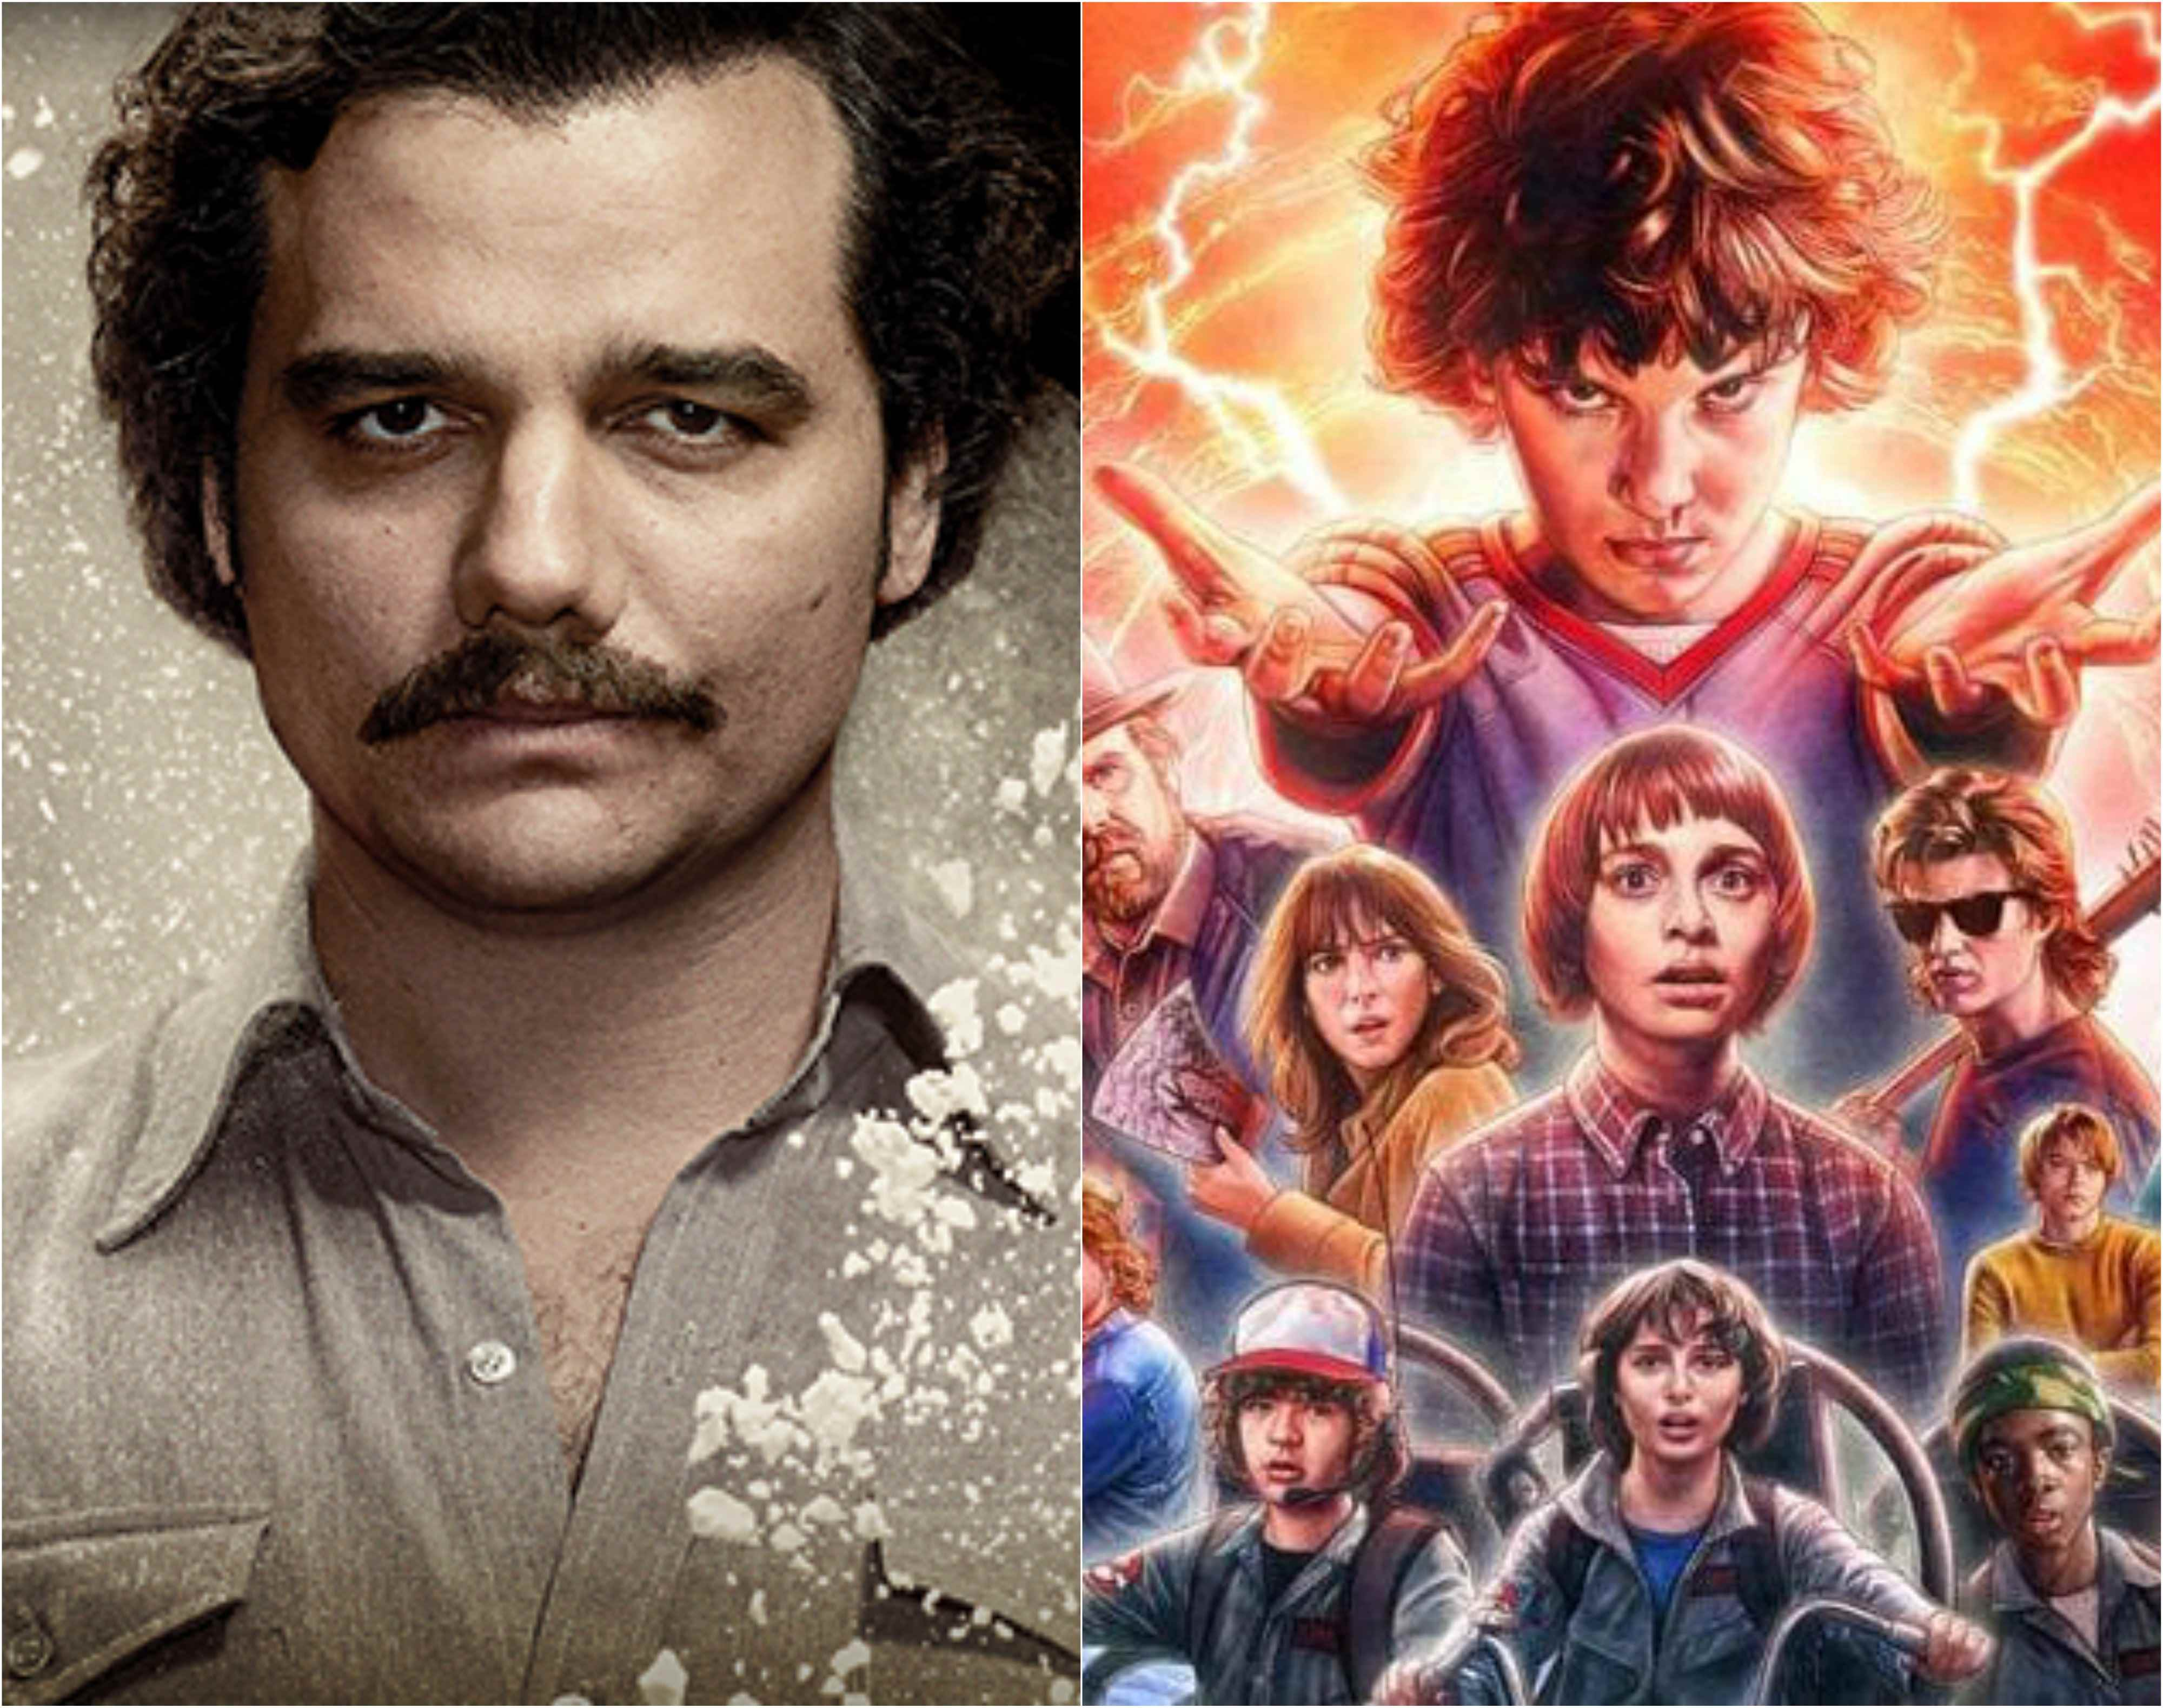 Stranger Things Narcos Top Shows Of Netflix In 2017